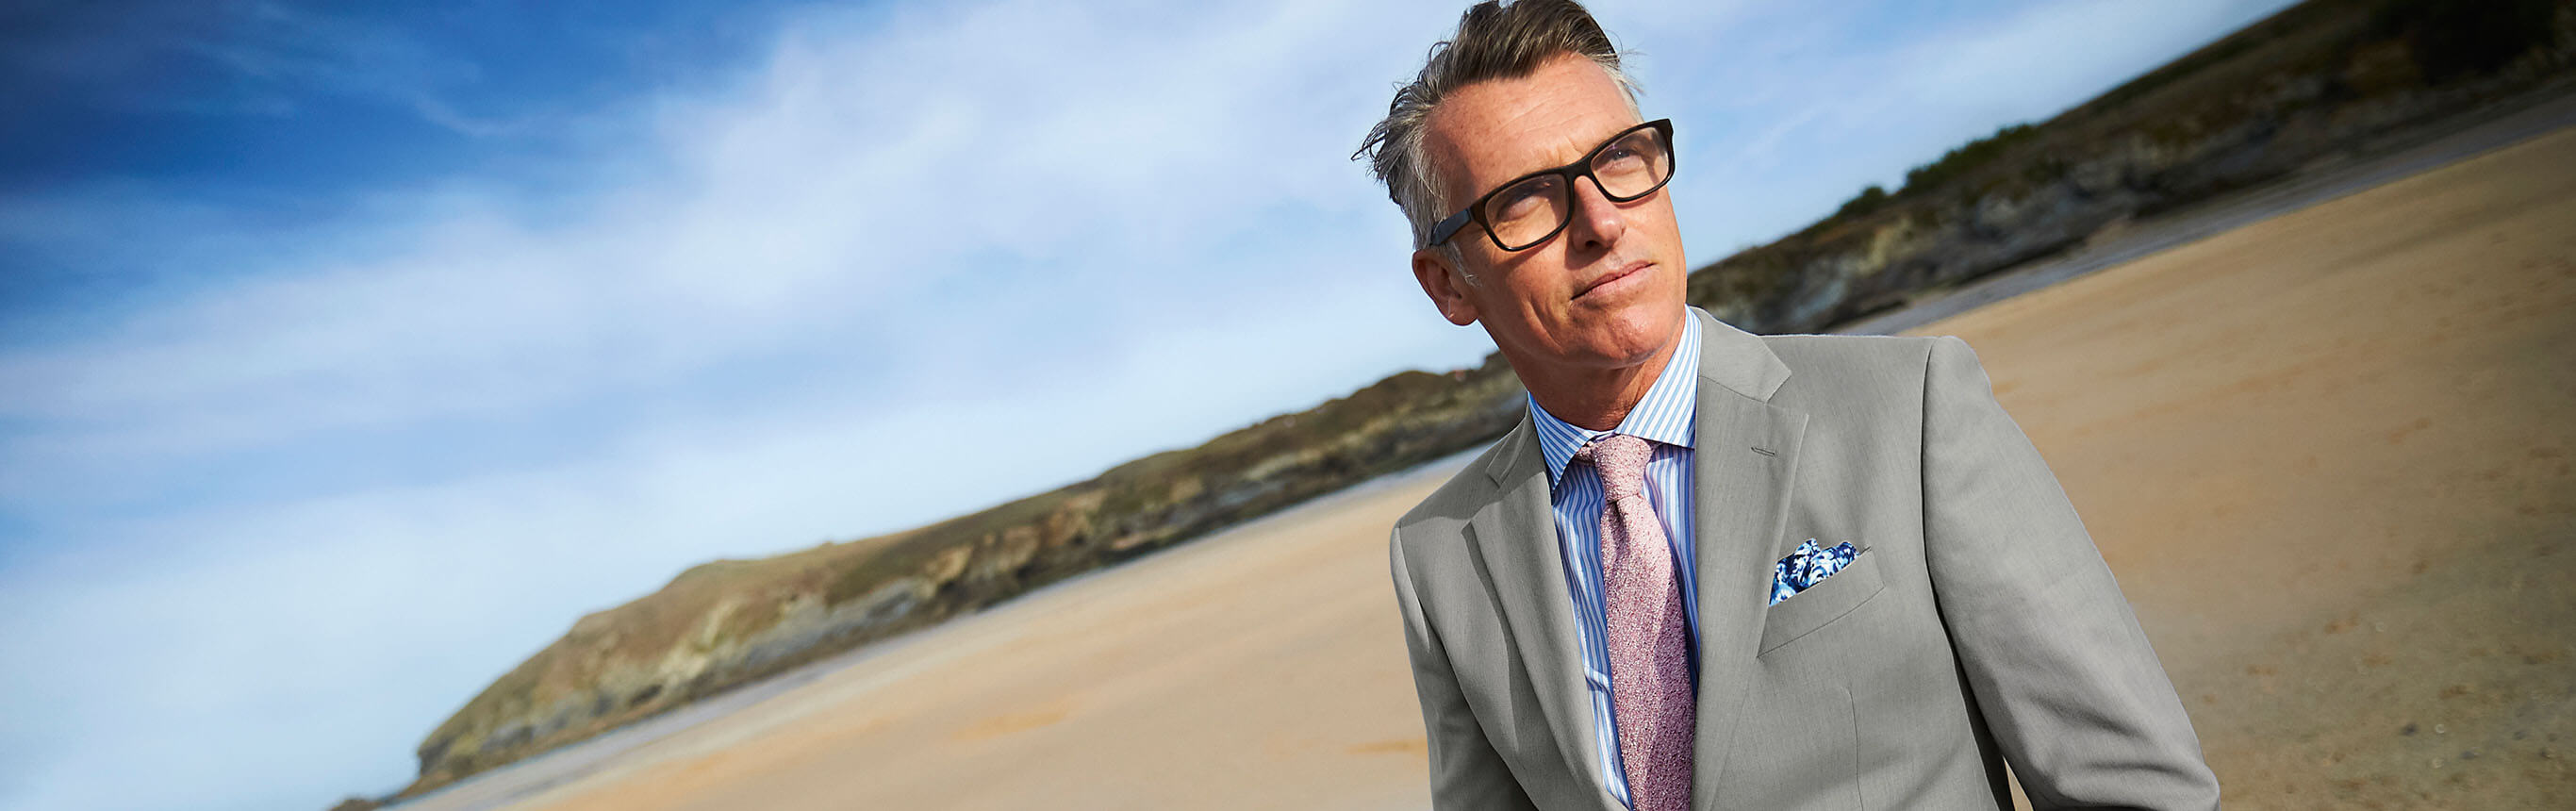 Image of model in suit on beach